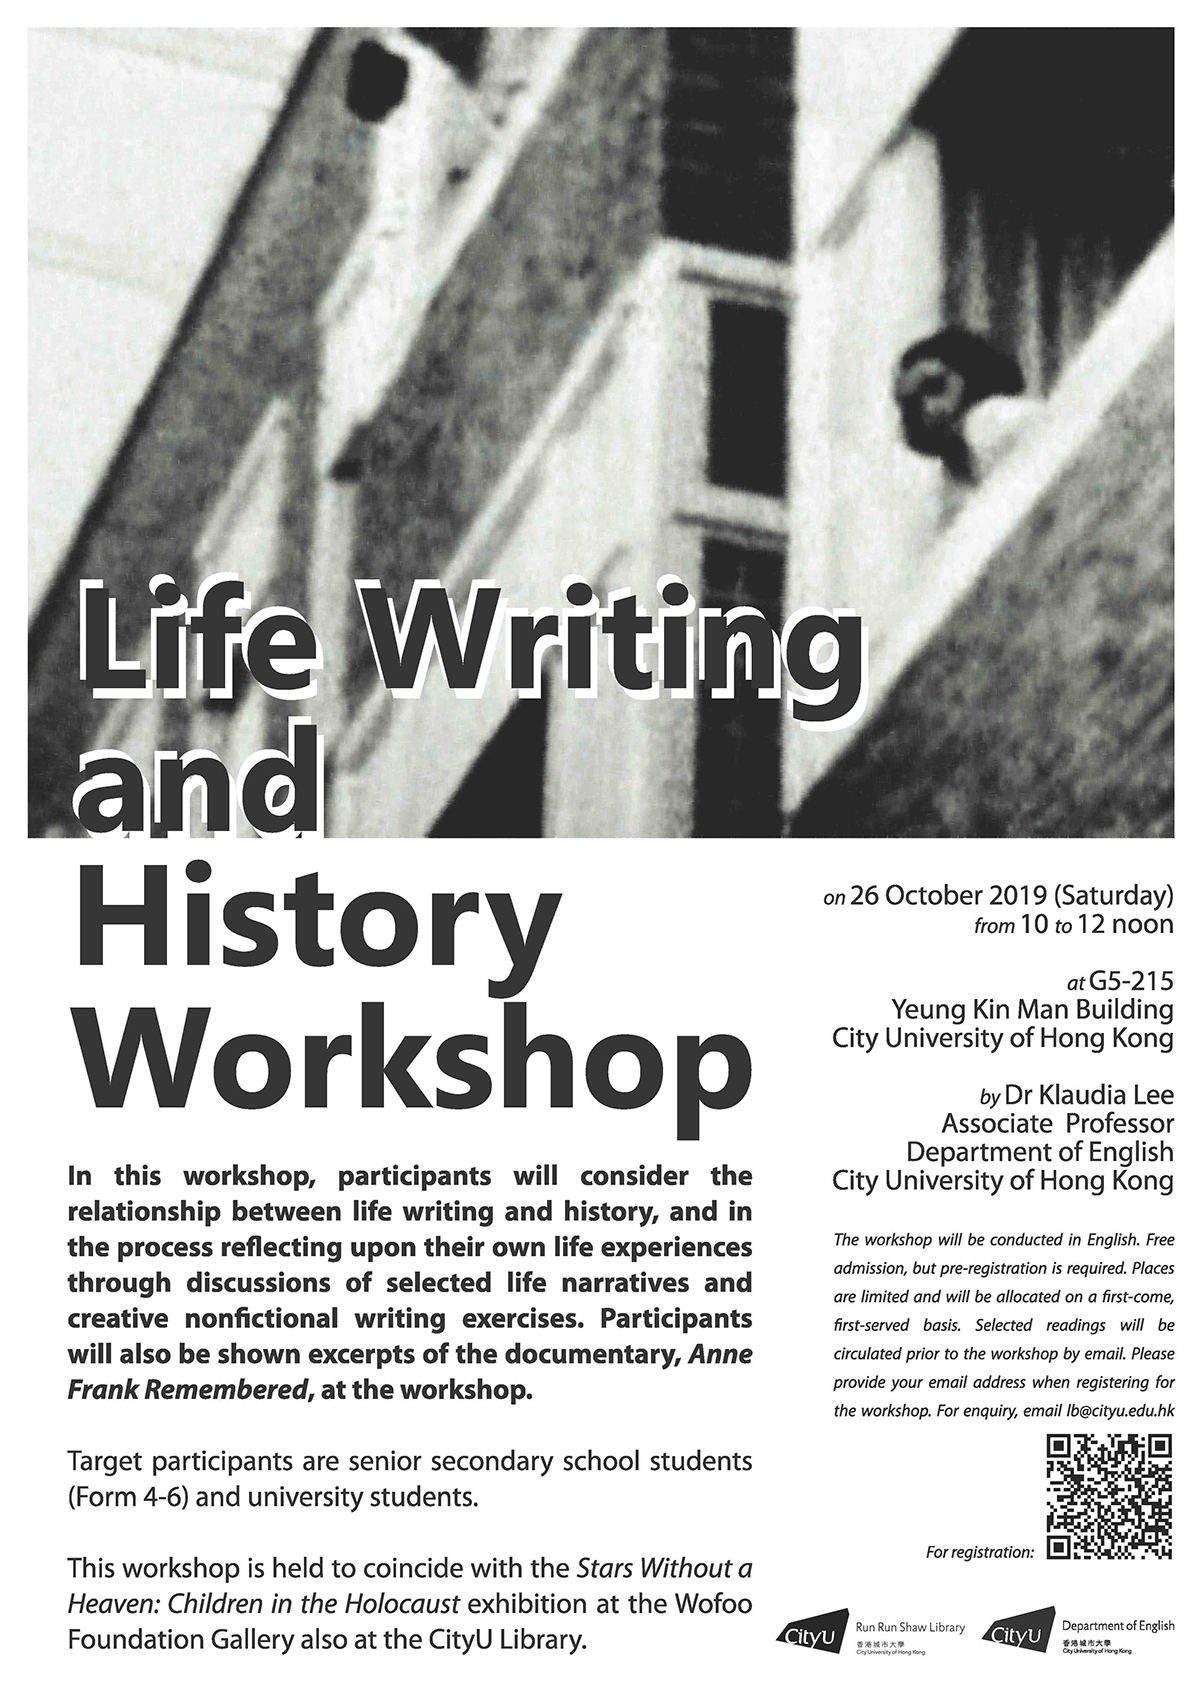 Life Writing and History Workshop